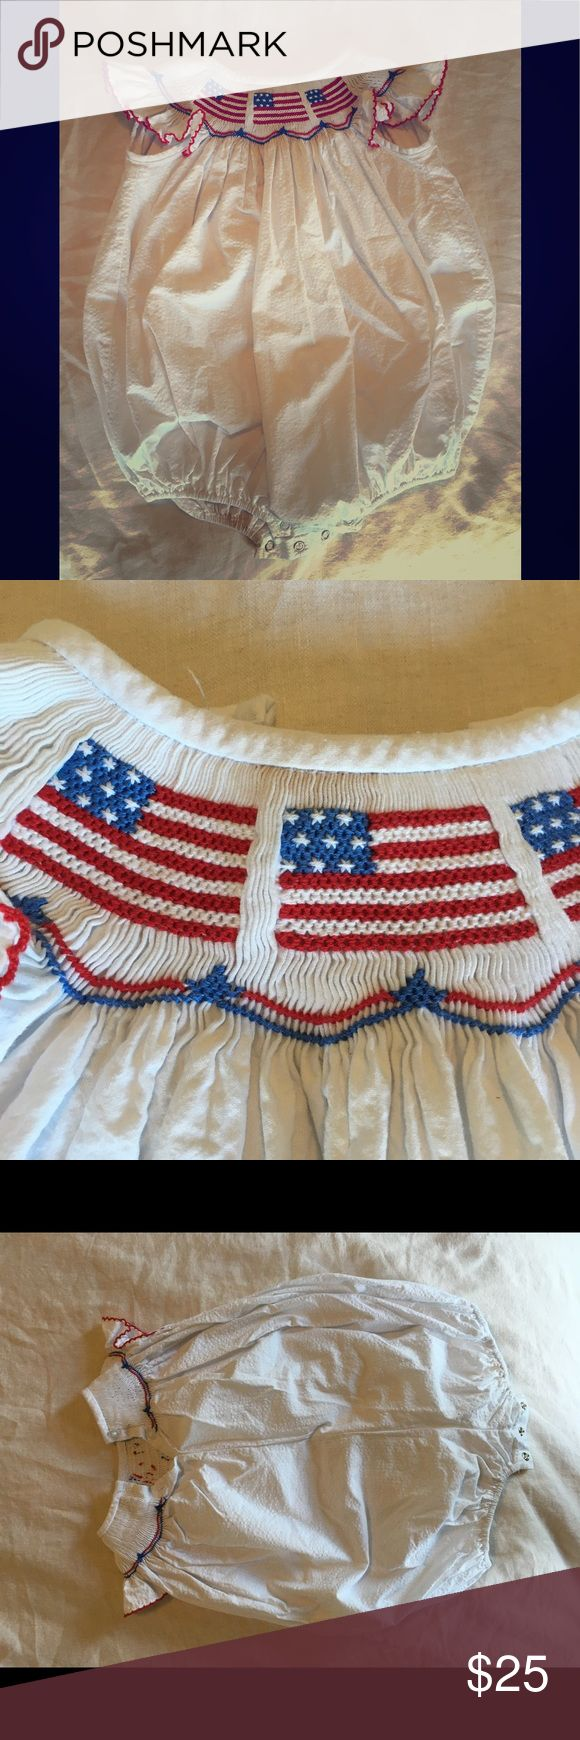 Adorable Smocked American Flag Bubble Adorable Smocked American Flag Bubble, perfect for Memorial Day Parades and 4th of July!   Very light stain as pictured, on the front and snap area, as pictured.  Purchased originally at Smocked Auctions Classic Whimsy One Pieces